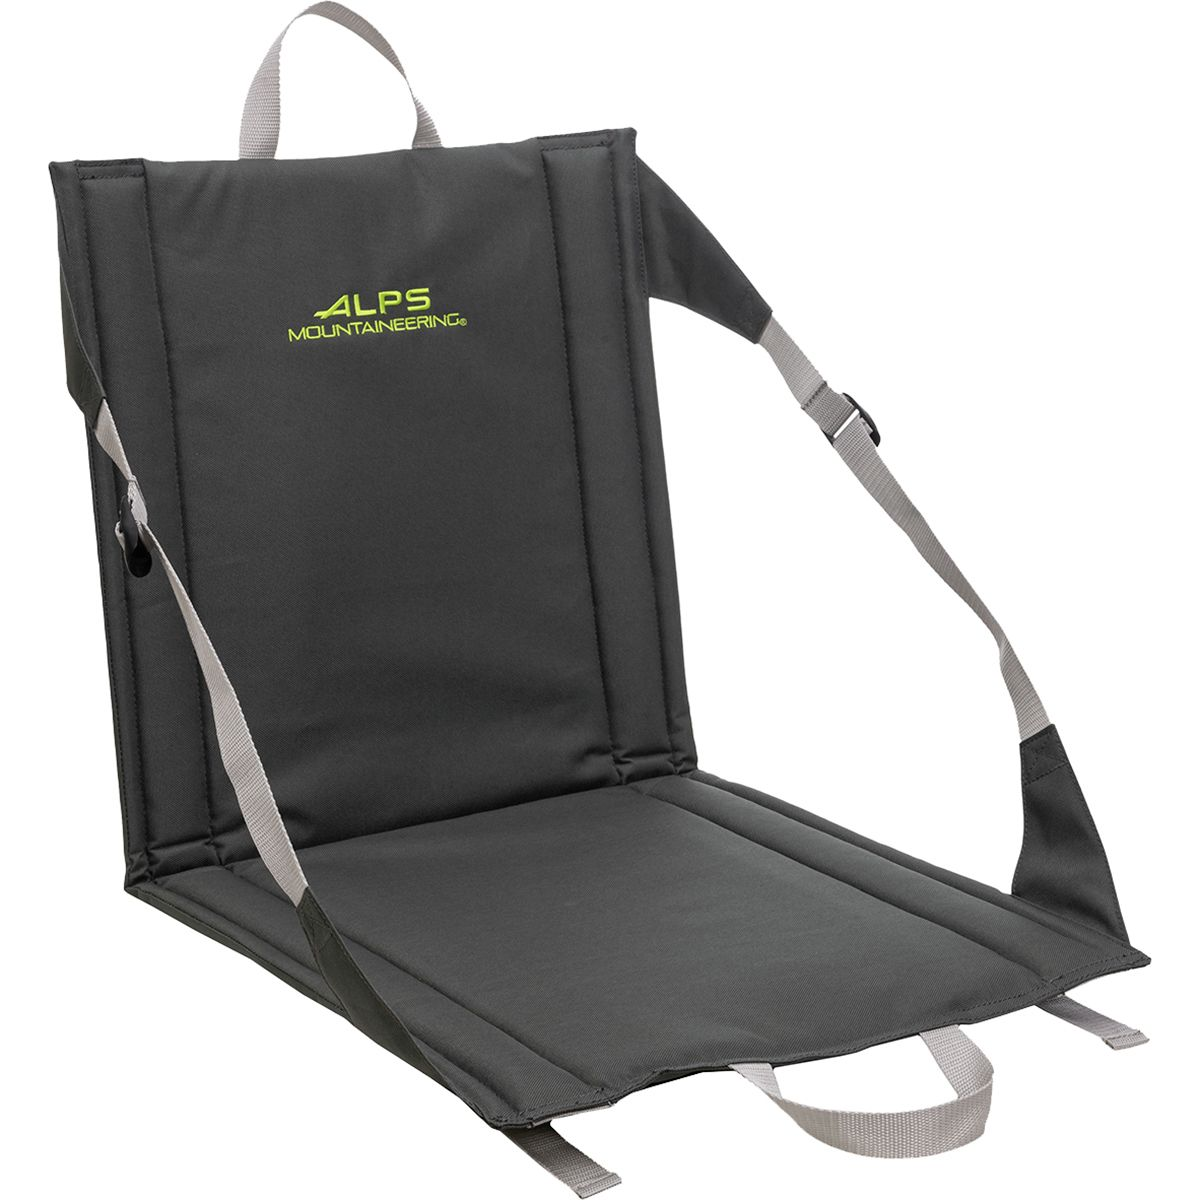 ALPS Mountaineering Weekender Seat Gray, One Size